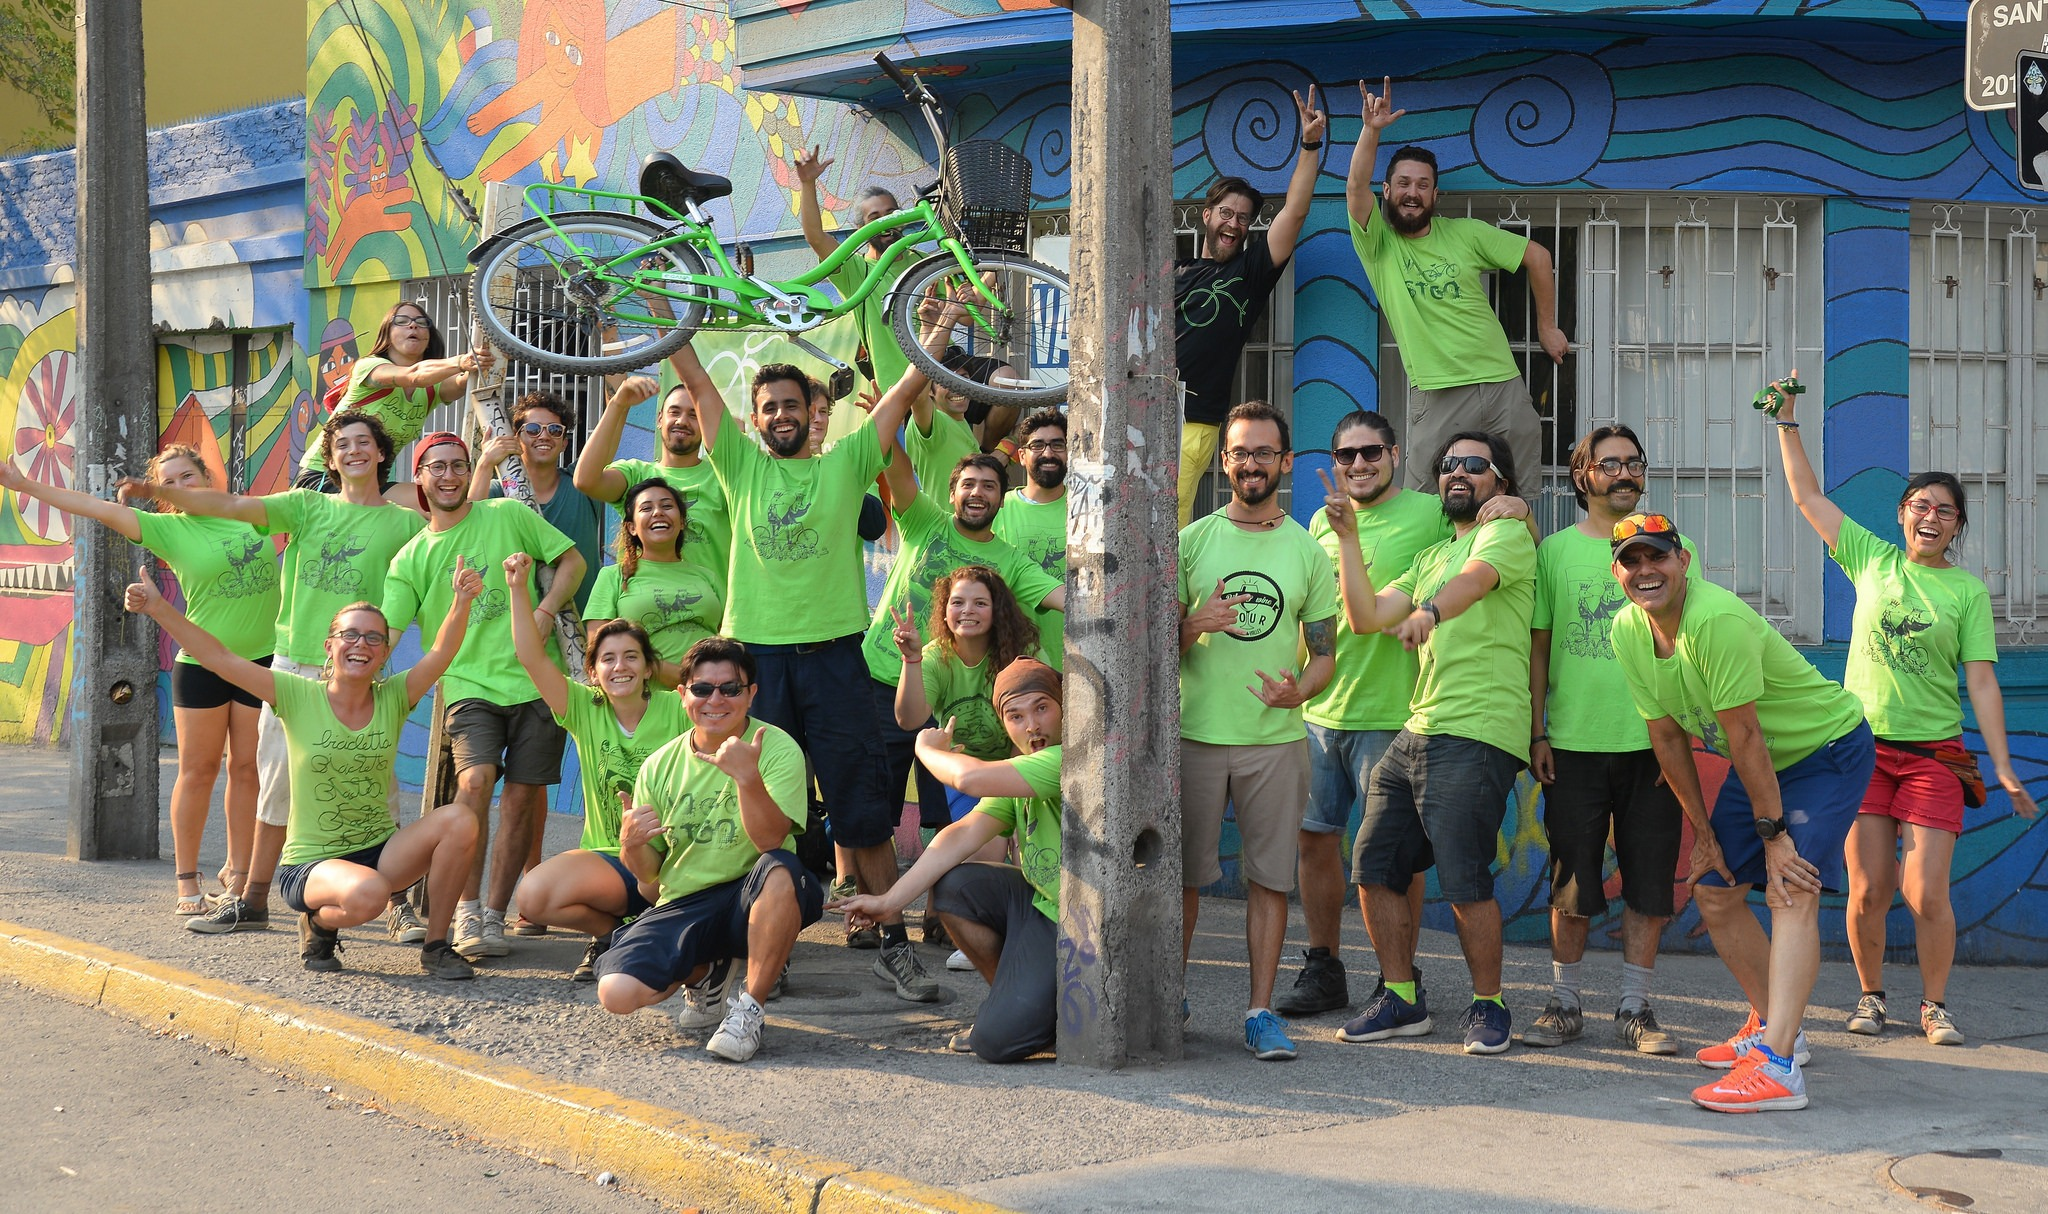 La Bicicleta Team clad in green shirts posing in front of their business building